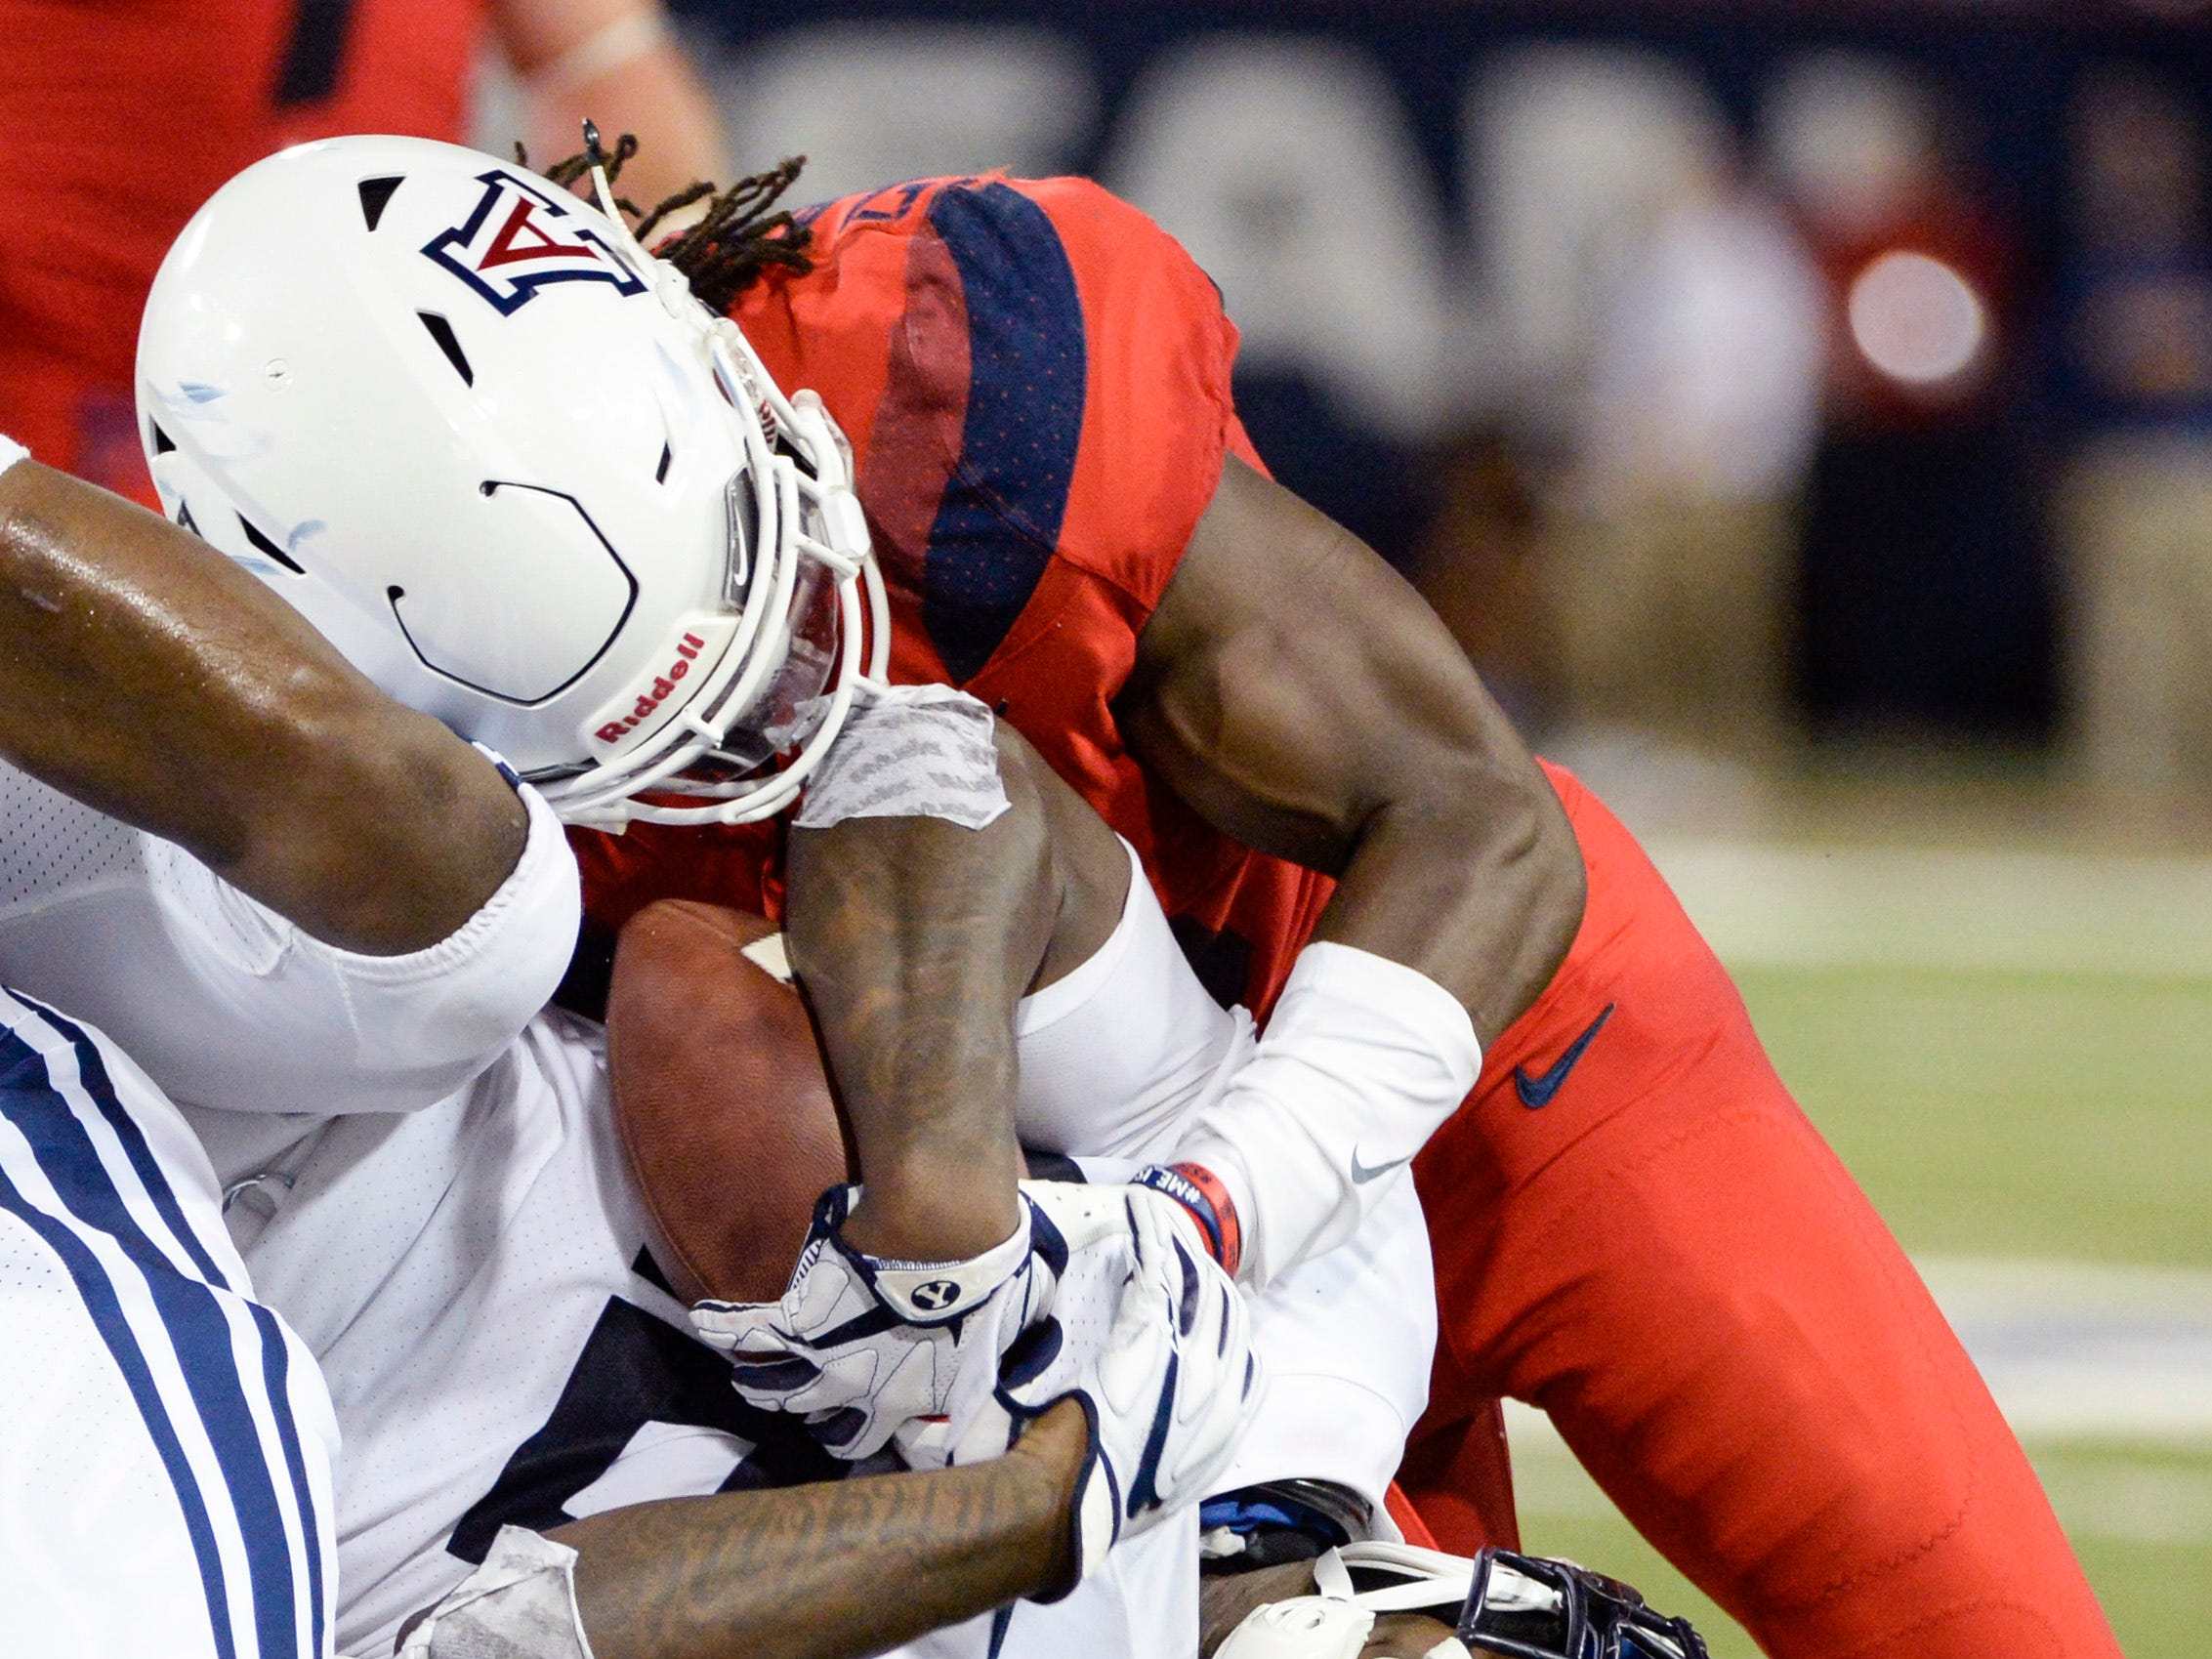 Sep 1, 2018; Tucson, AZ, USA; Brigham Young Cougars running back Squally Canada (22) is tackled by Arizona Wildcats safety Demetrius Flannigan-Fowles (6) during the first half at Arizona Stadium.